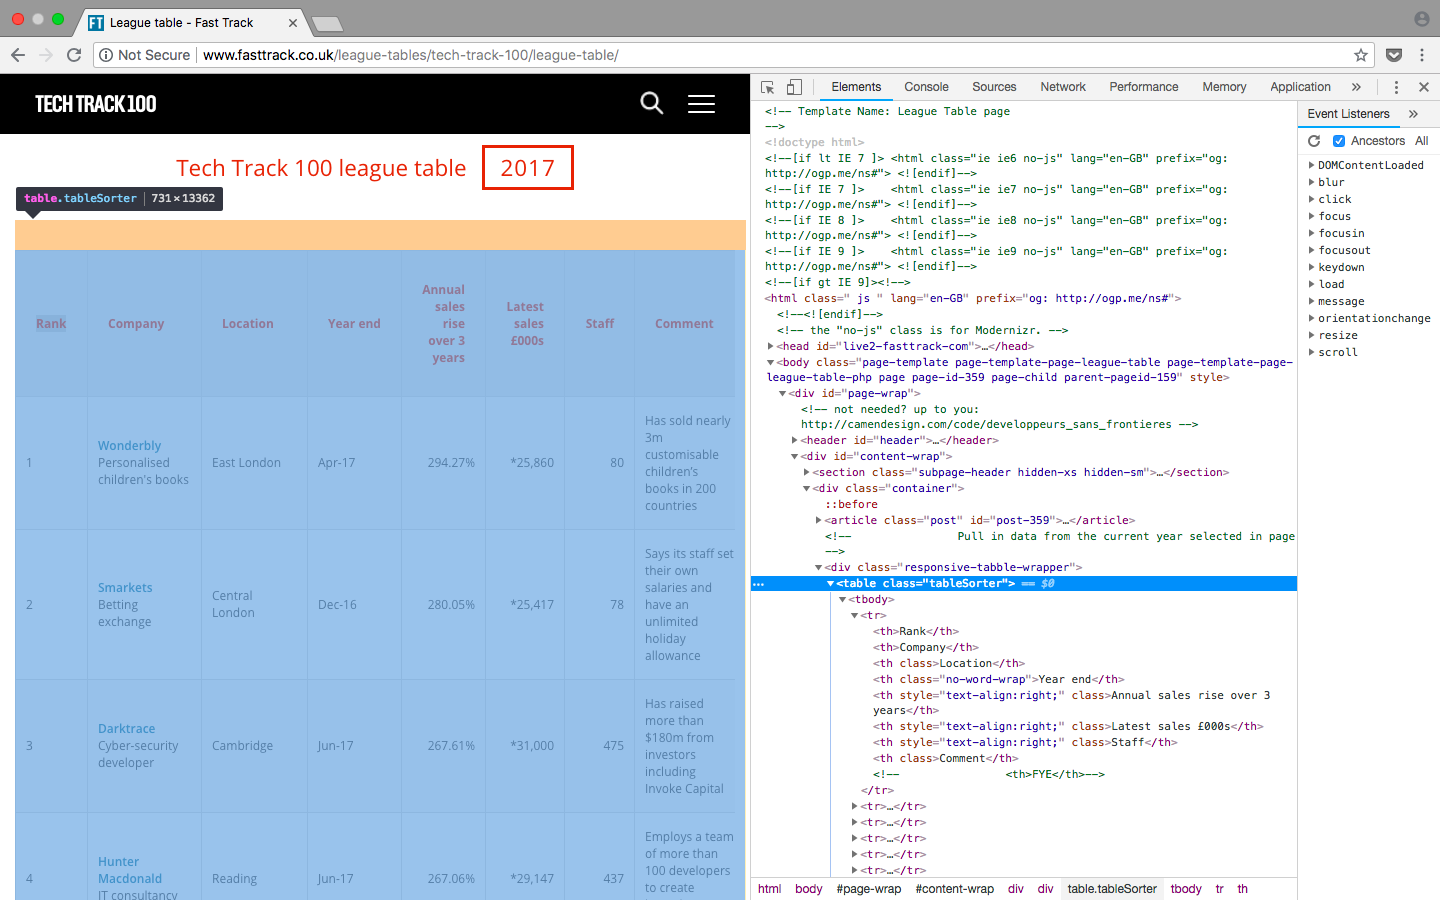 Right click on the element you are interested in and select 'Inspect', this brings up the html elements